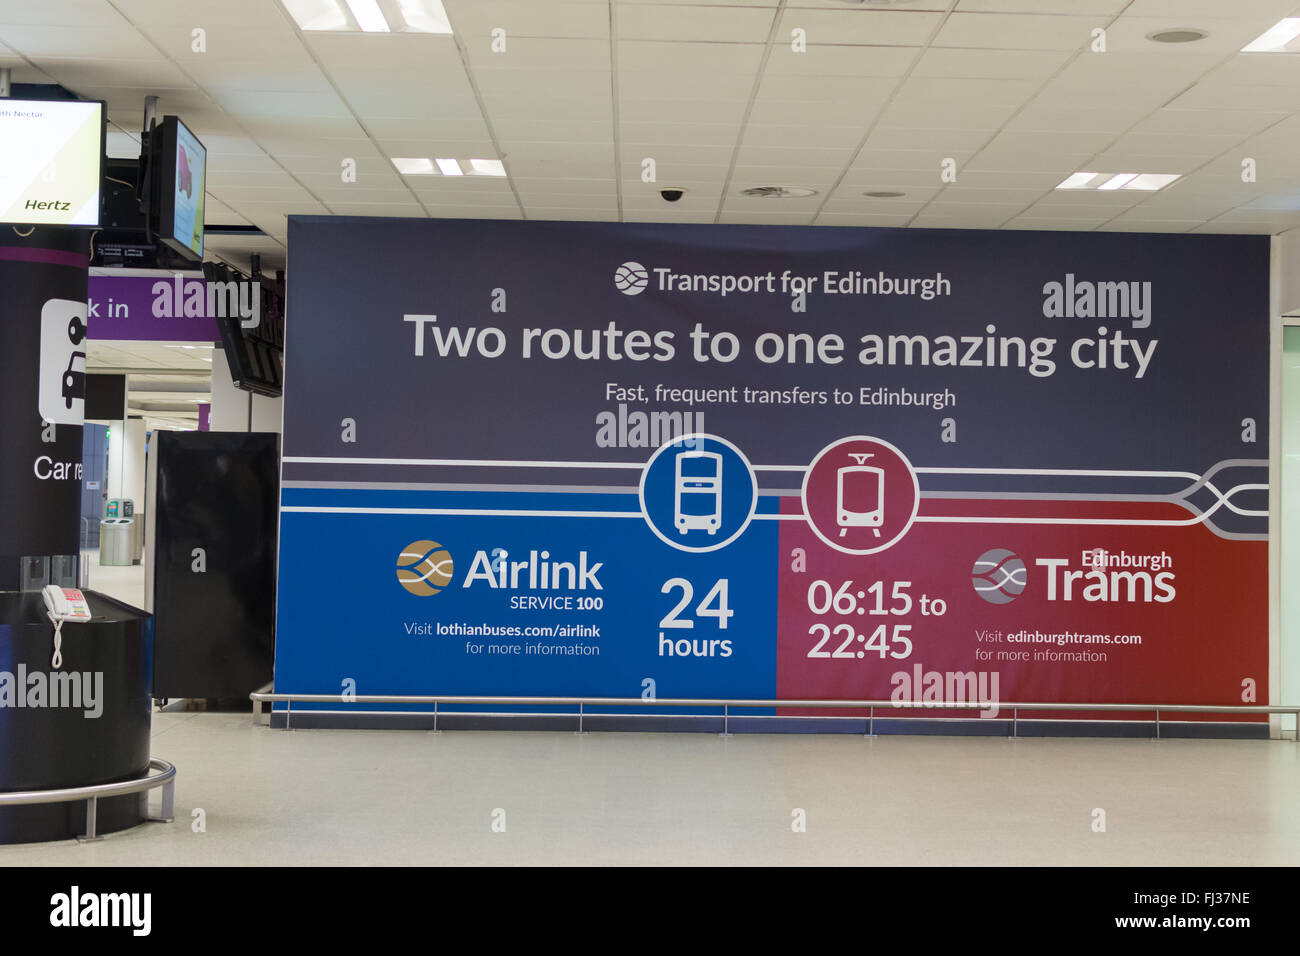 Edinburgh airport sign advertising transport links to Edinburgh city centre - Airlink and Edinburgh Trams - Stock Image